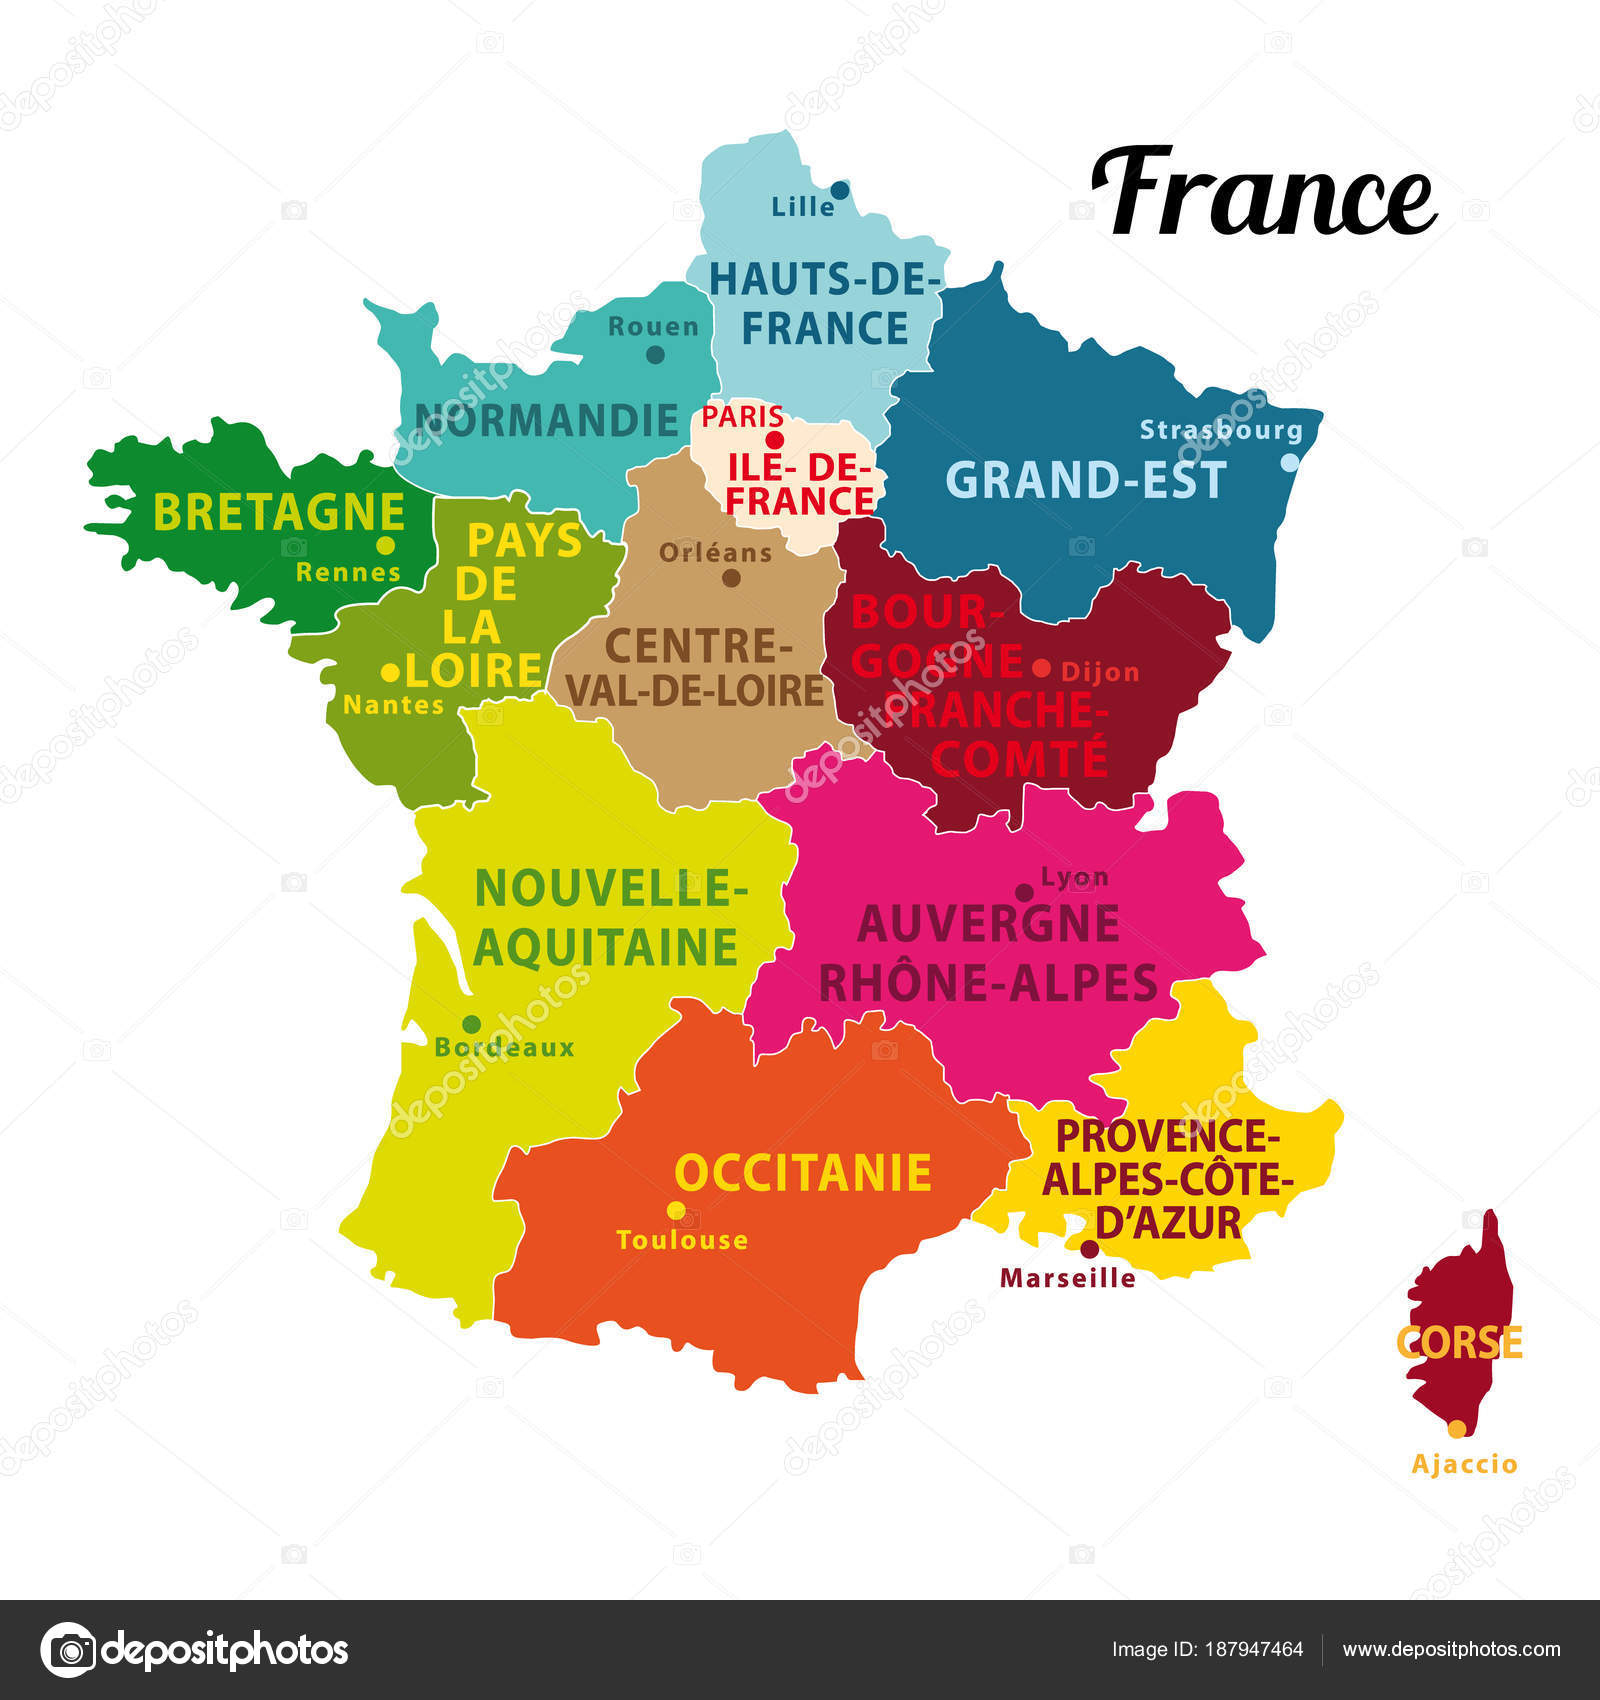 204E Carte France Region | Wiring Library destiné Carte De France Avec Les Régions